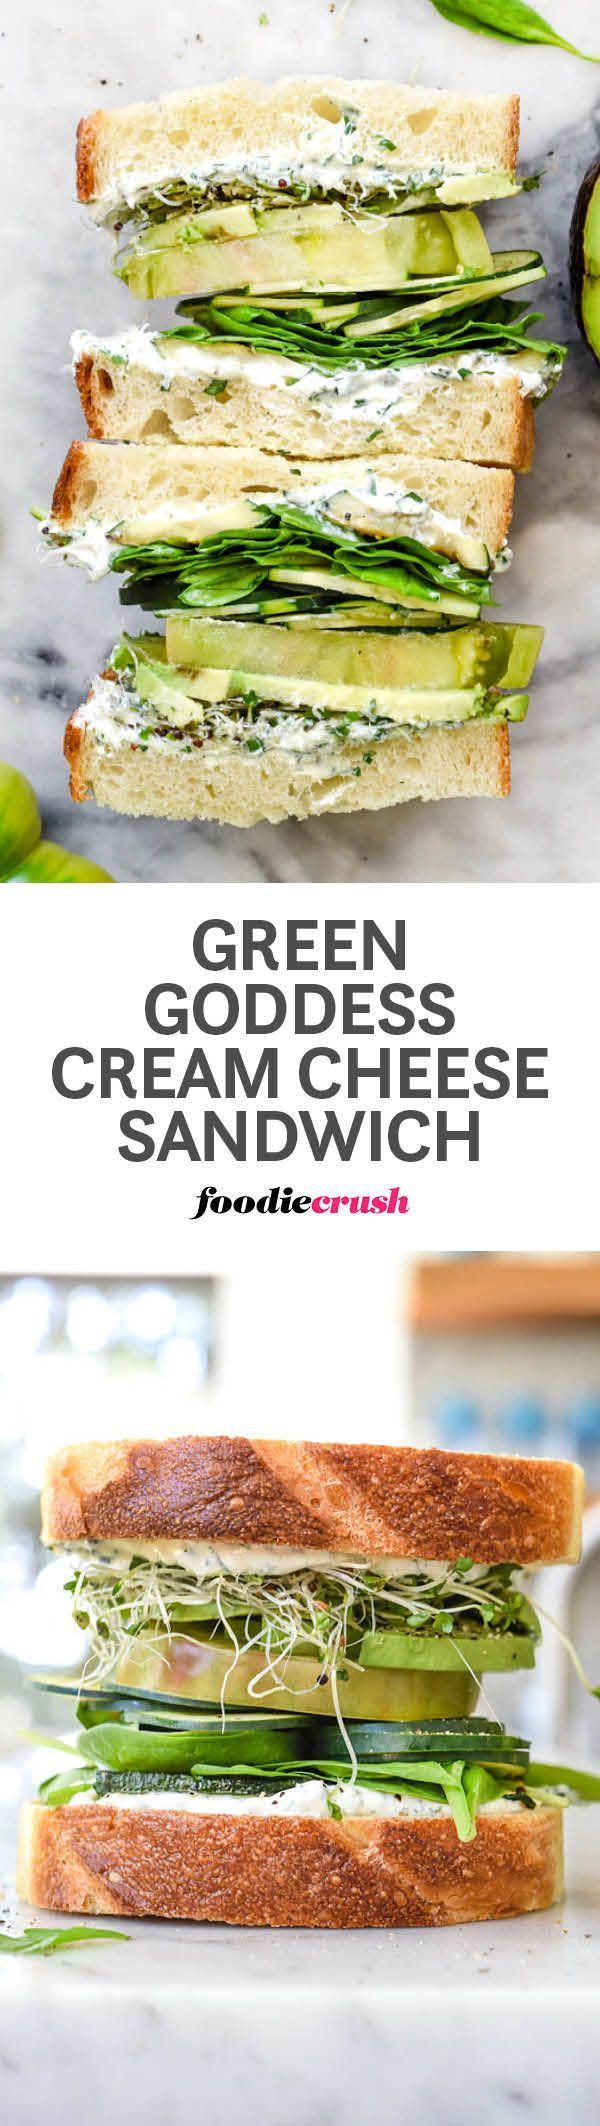 Garlic and herb-infused cream cheese flavor a bounty of green veggies to make a healthy sandwich with loads of flavor. | http://foodiecrush.com #sandwich #veggie #greengoddess #creamcheese